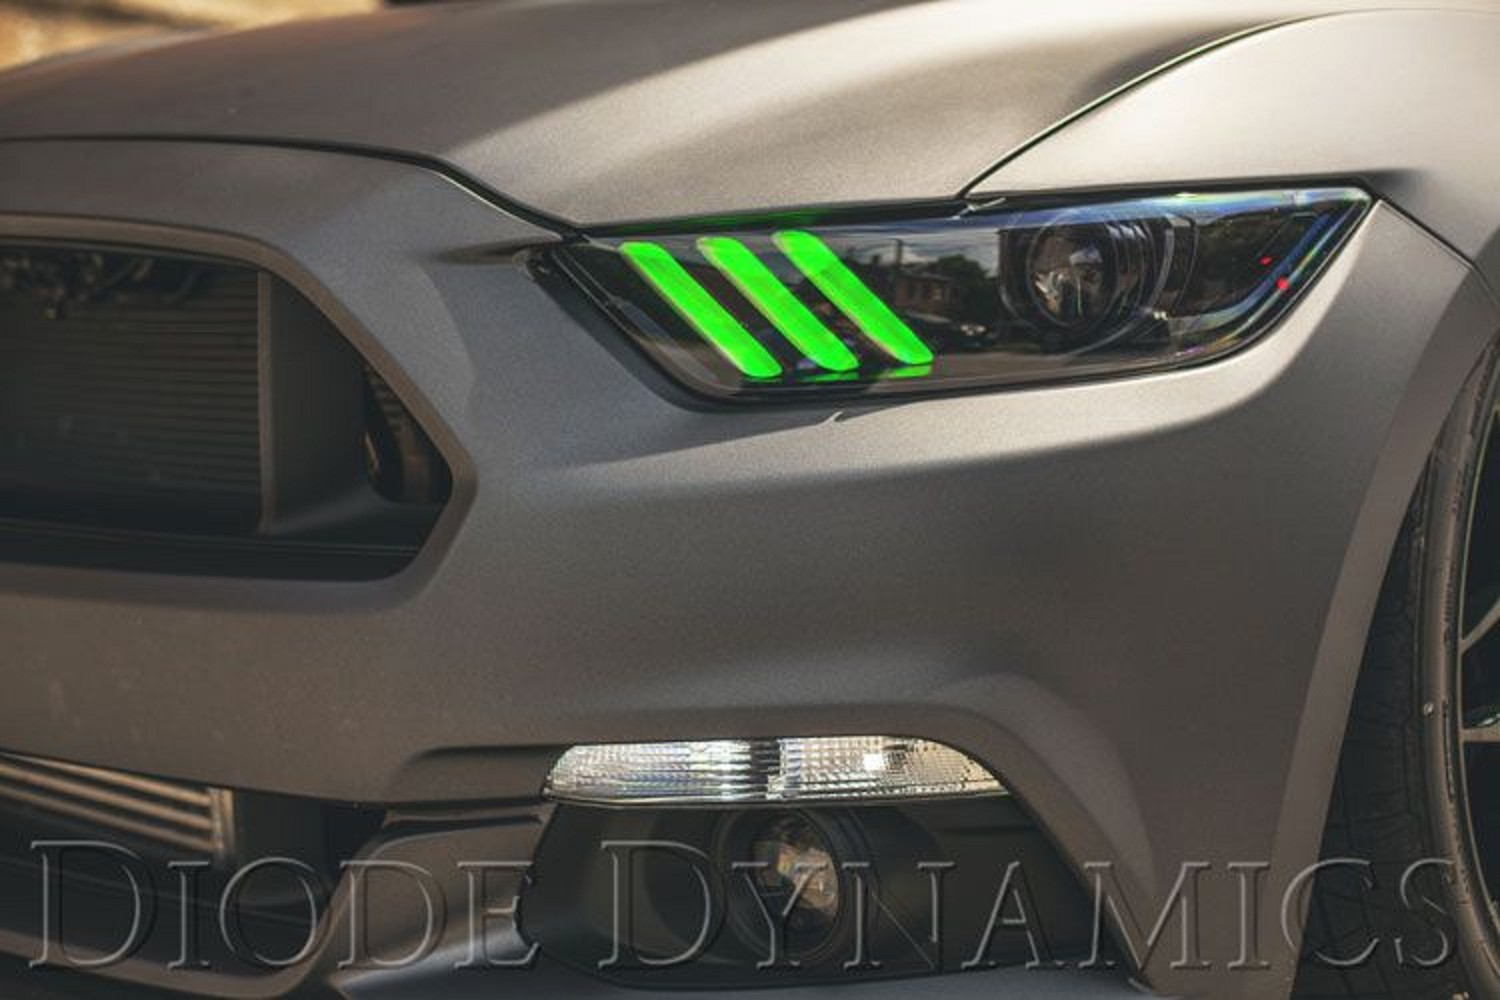 Diode Dynamics Ford Mustang Multicolor Drl Led Boards 2017 Free Shipping Steeda Autosports